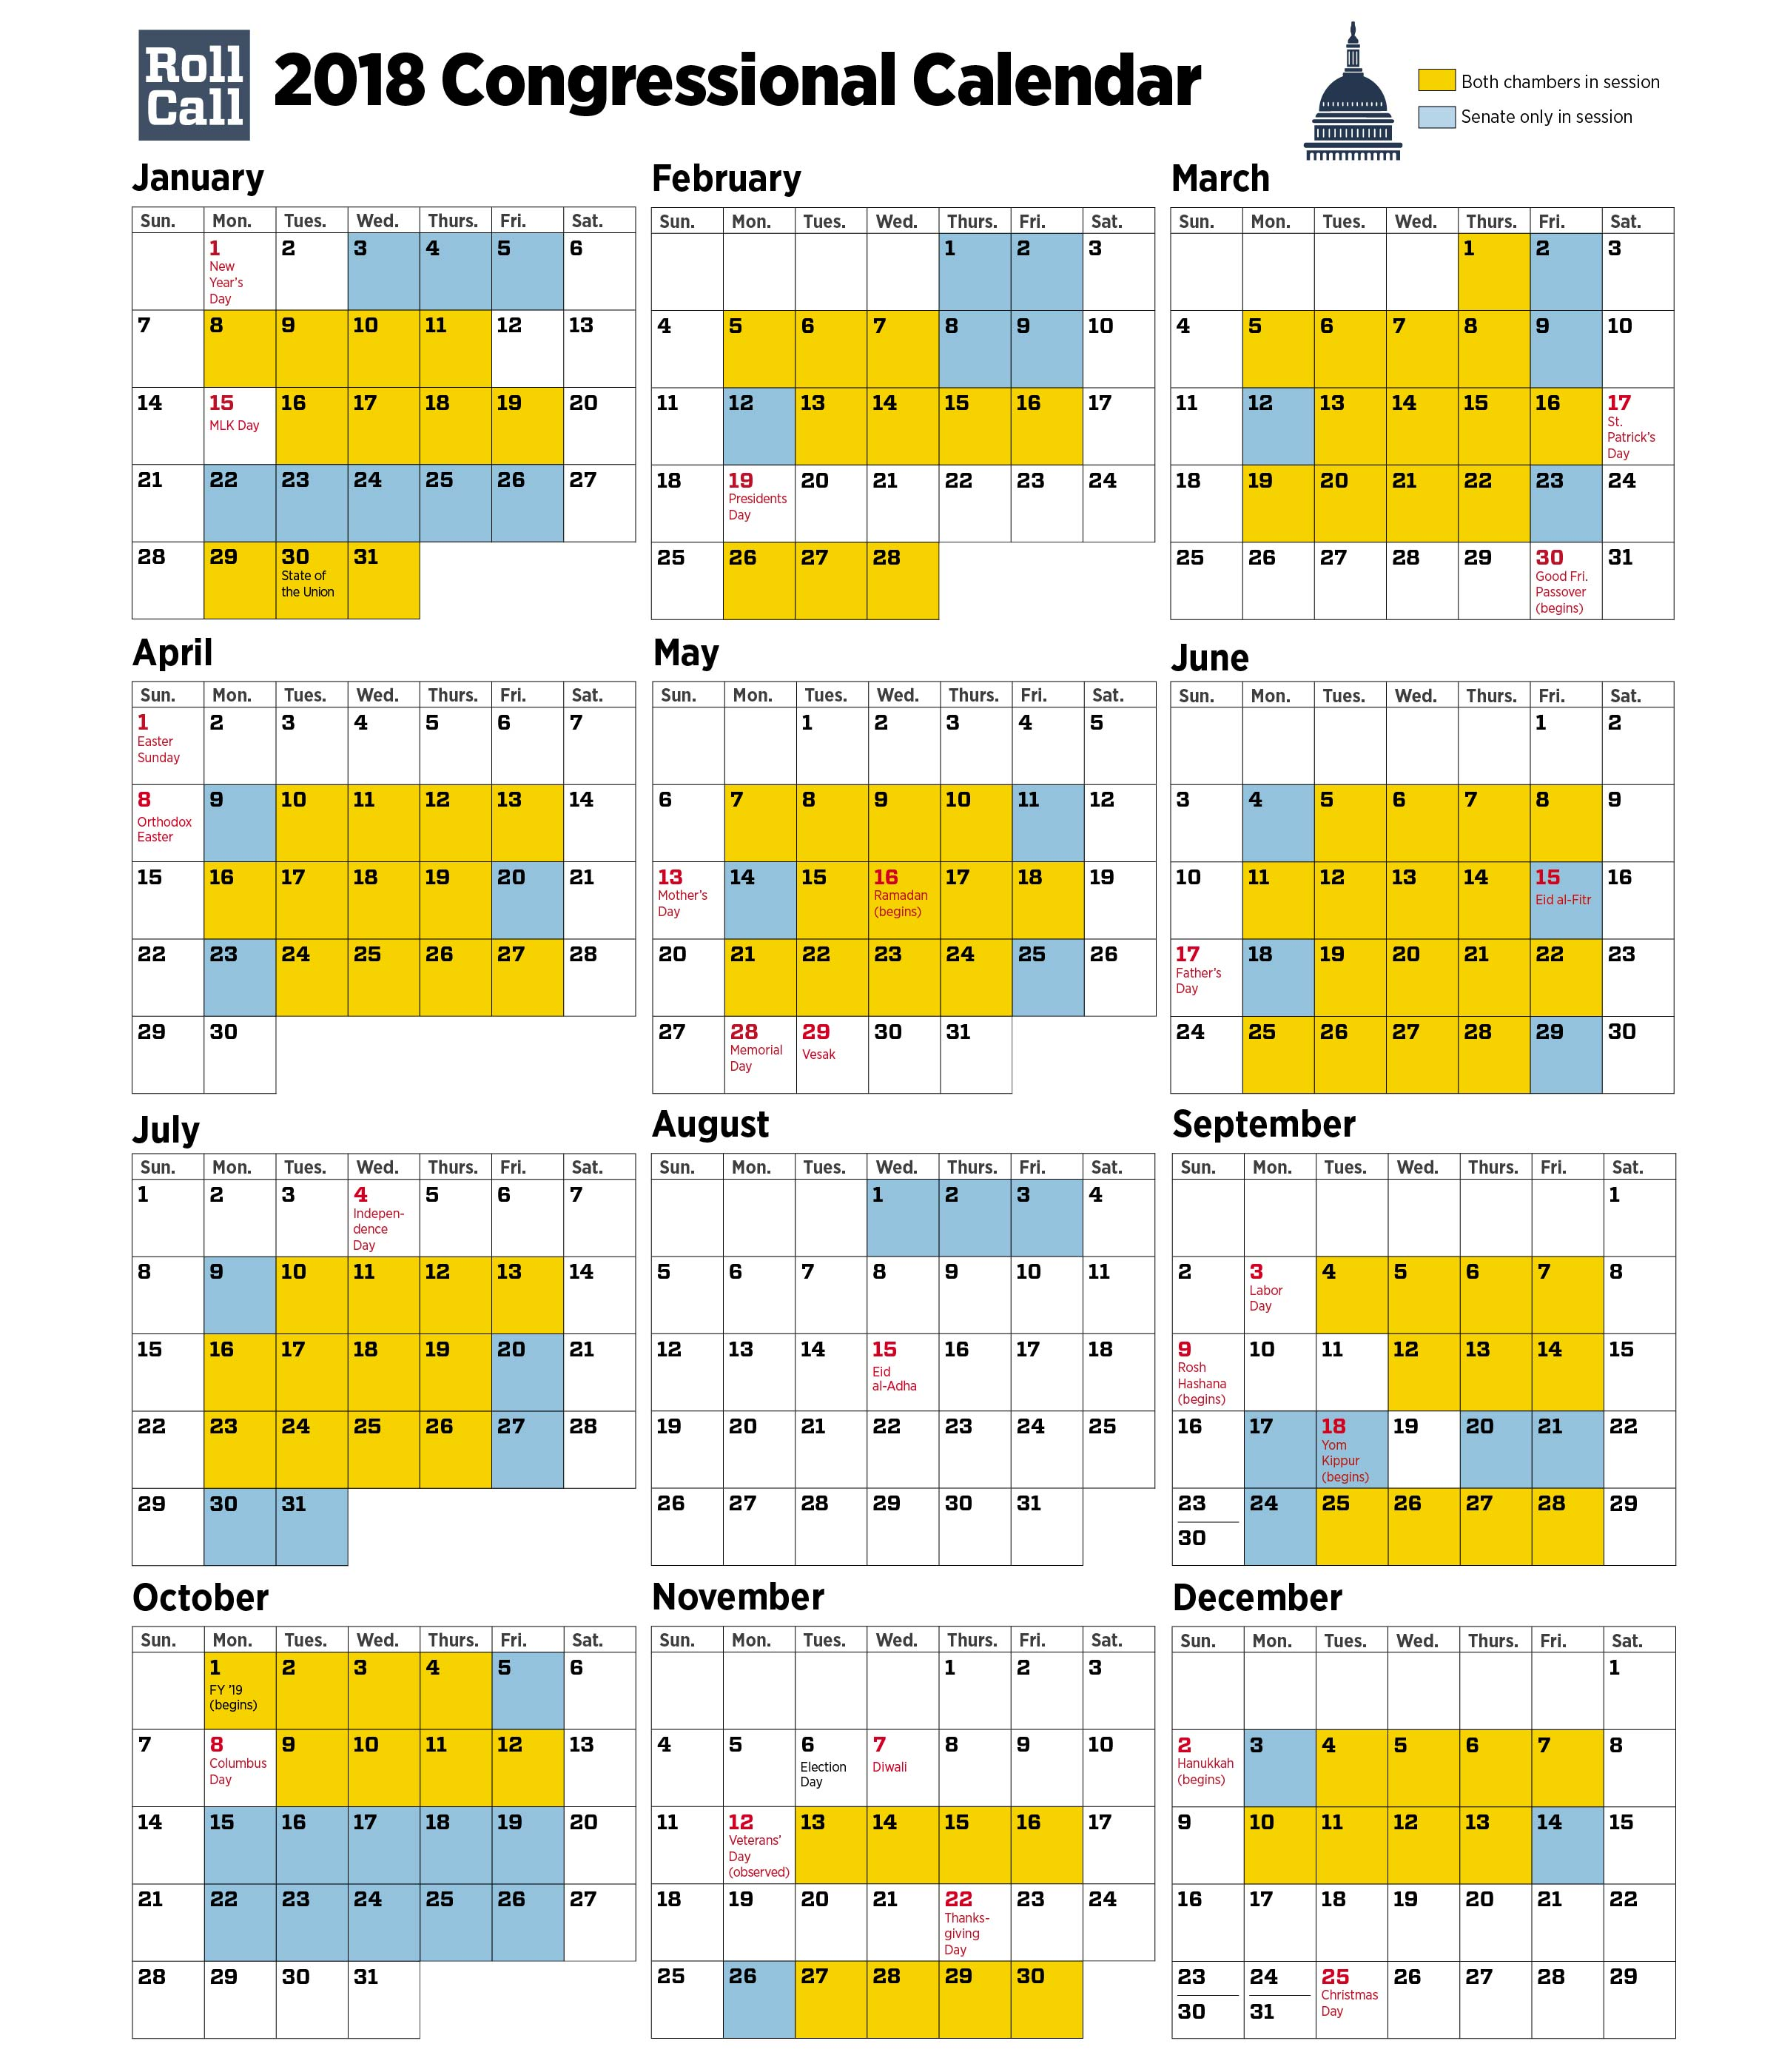 roll call created the visual representation of the congressional calendar below highlighting the days when both chambers are in session in yellow and the